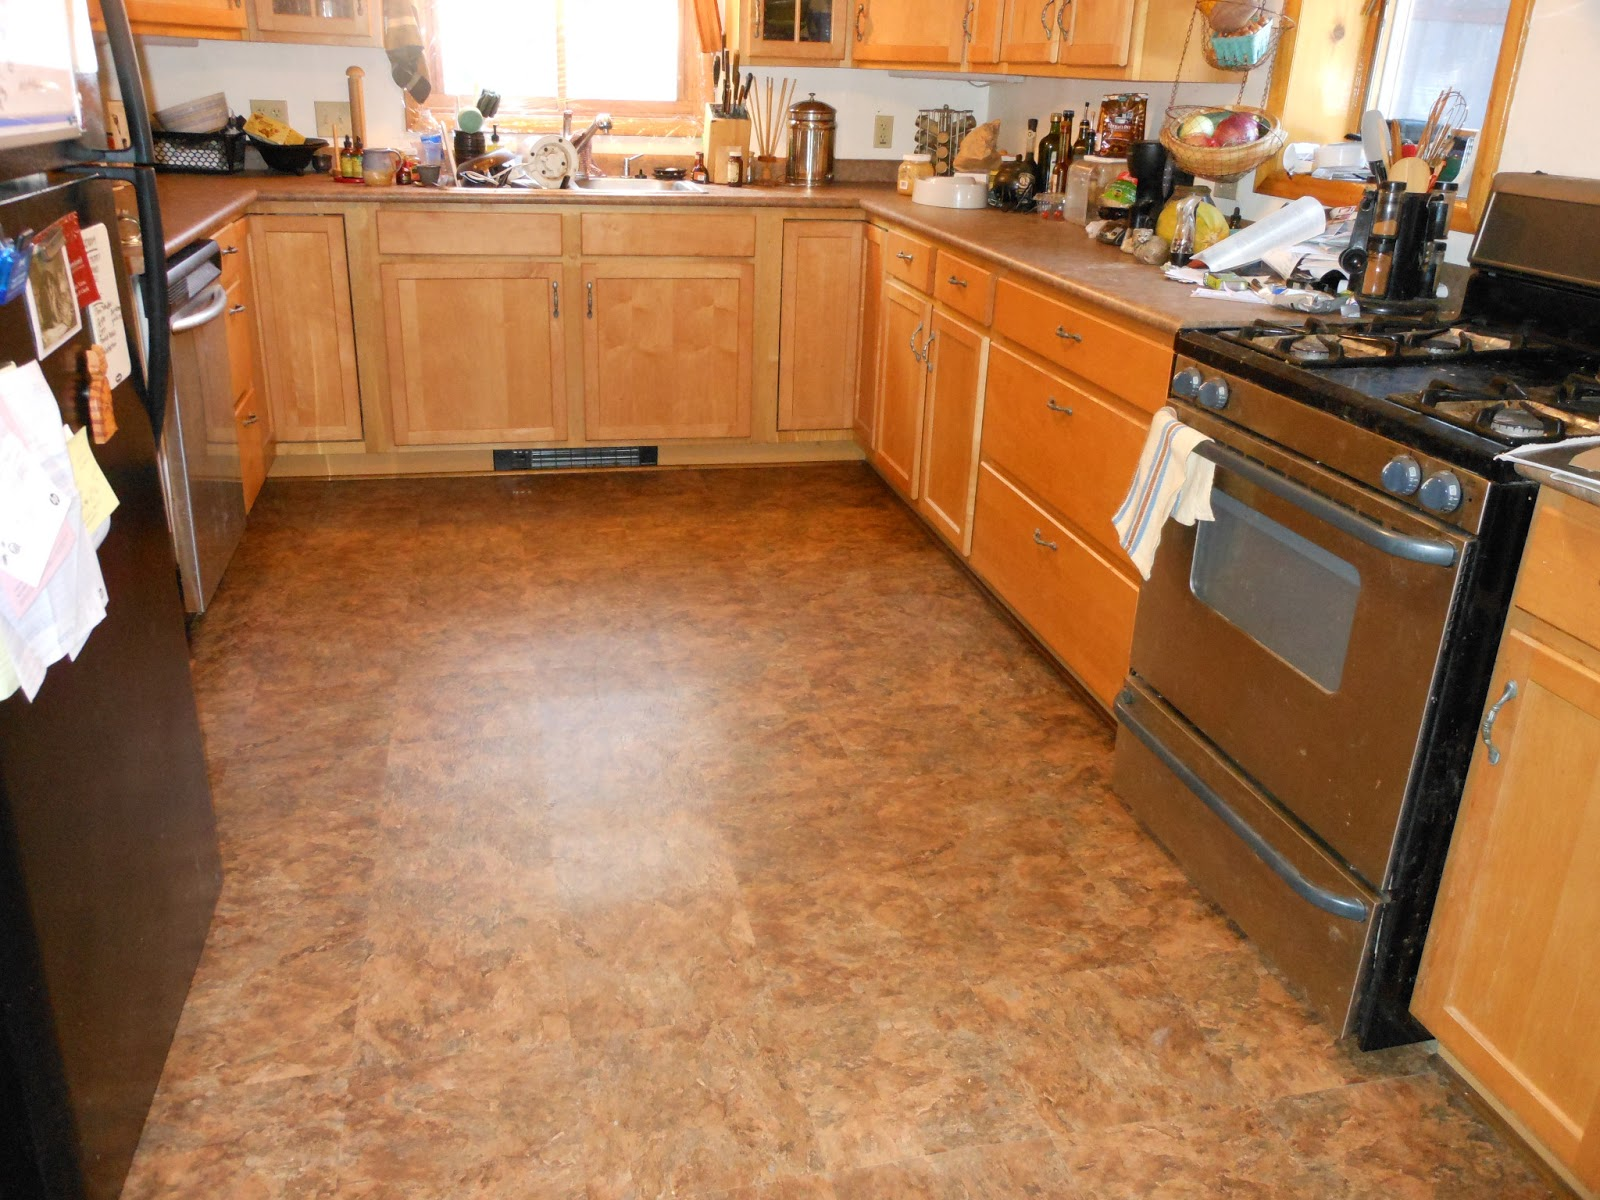 Floor Covering For Kitchens The Best Nonslip Tile Types For Kitchen Floor Tile Midcityeast